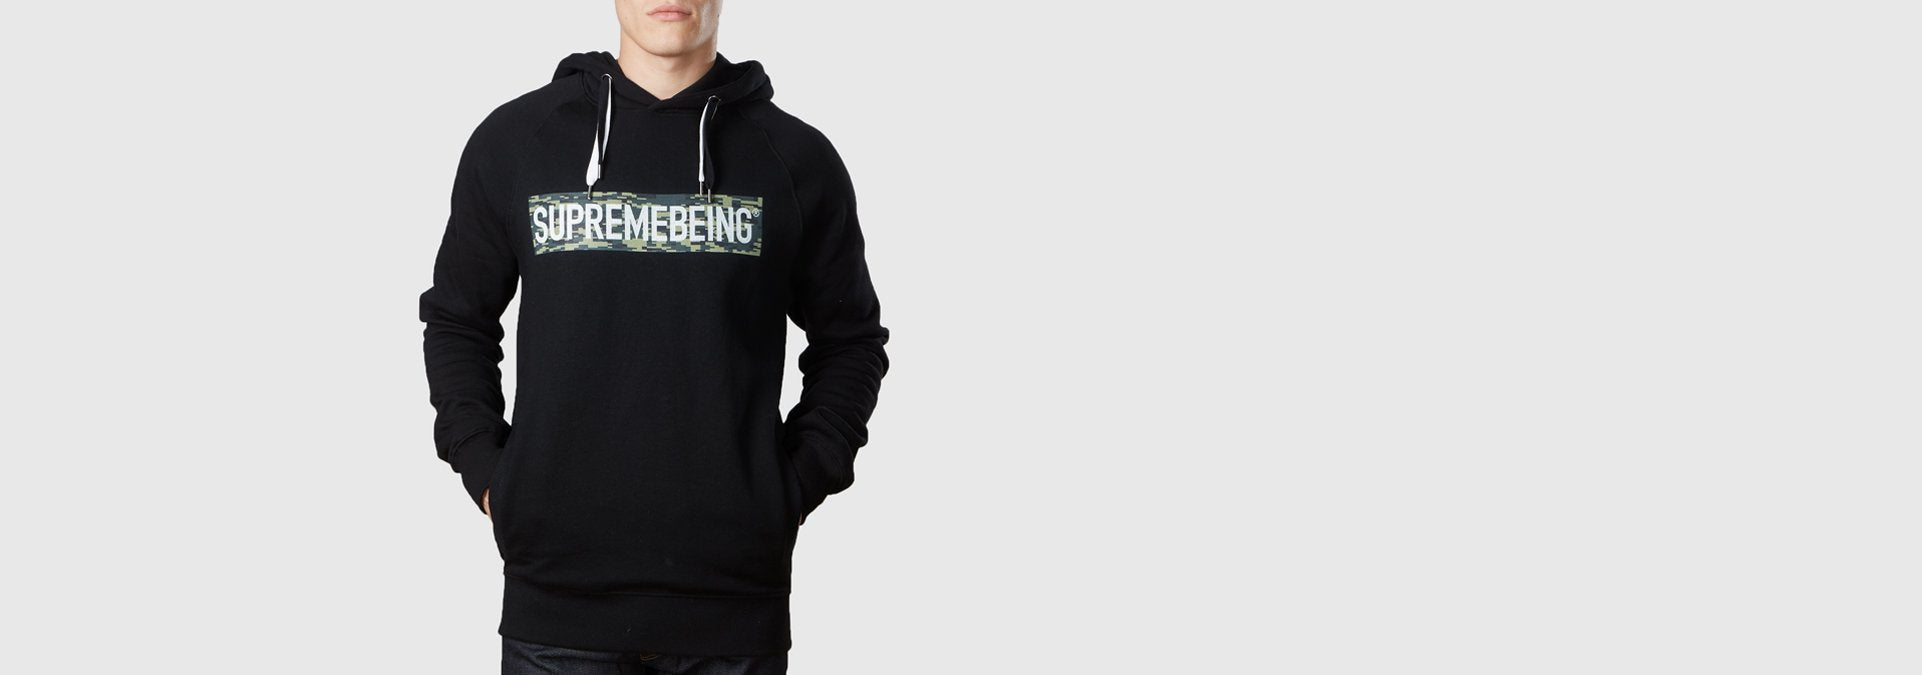 Supremebeing Camouflage Background Organic Cotton Hoodie Black